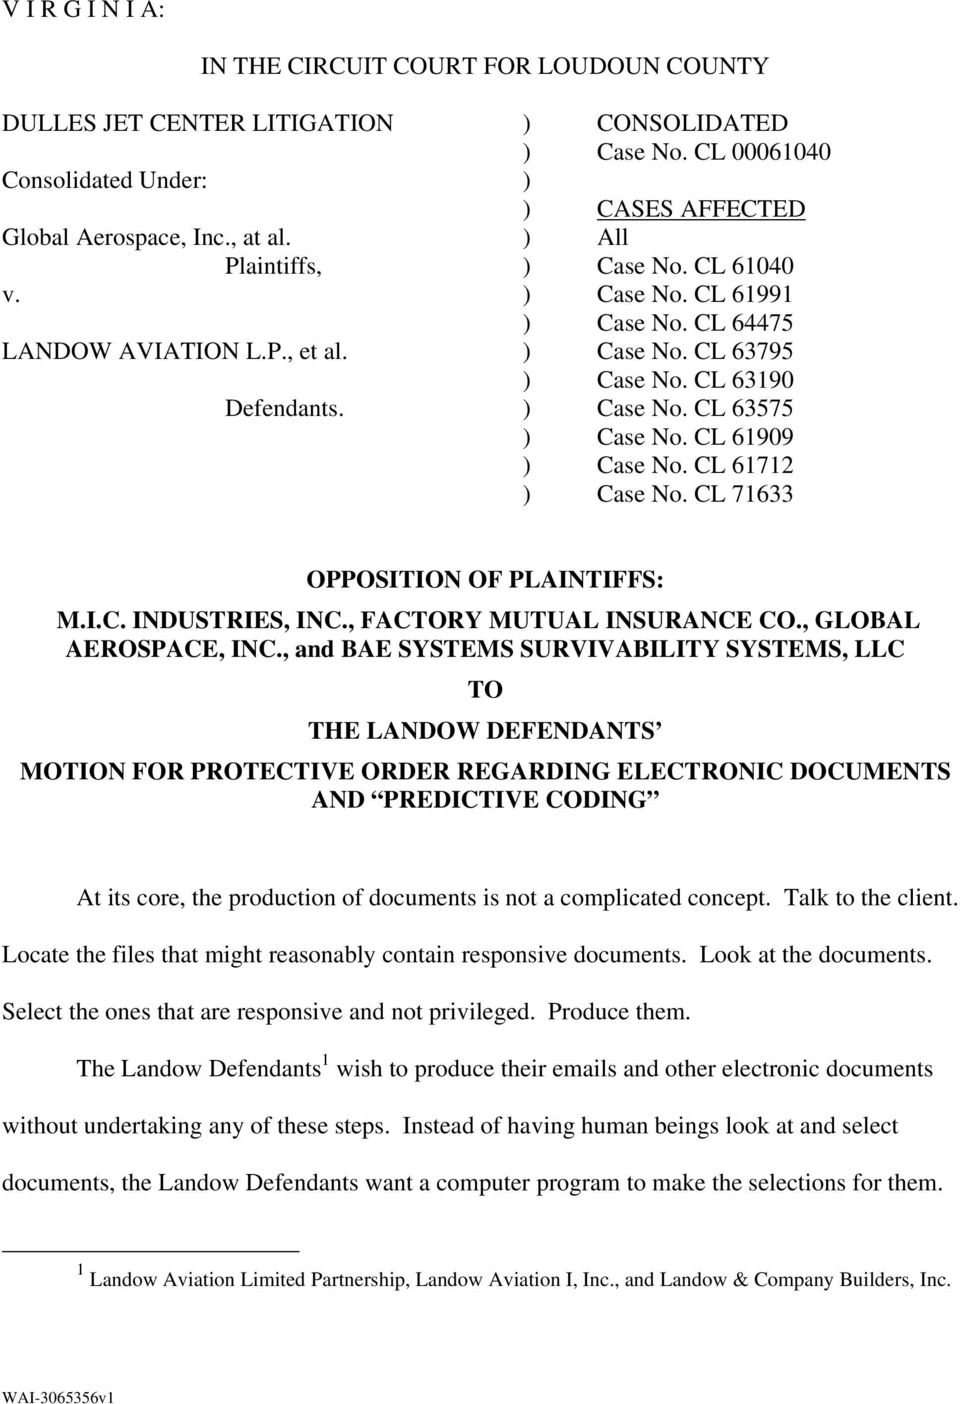 CL 61909 ) Case No. CL 61712 ) Case No. CL 71633 OPPOSITION OF PLAINTIFFS: M.I.C. INDUSTRIES, INC., FACTORY MUTUAL INSURANCE CO., GLOBAL AEROSPACE, INC.